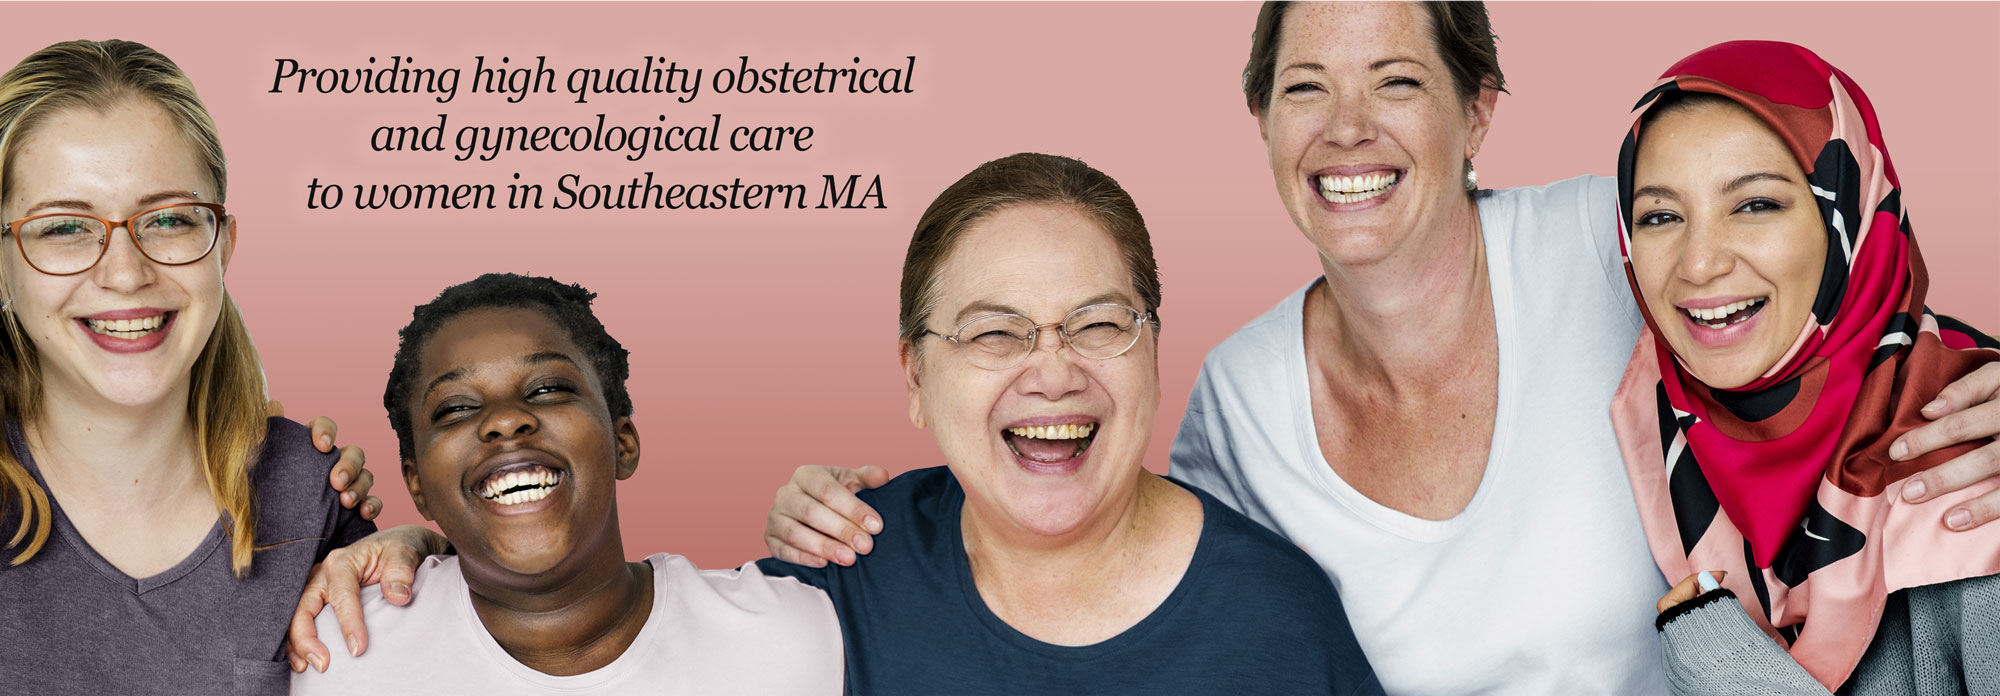 Southcoast Womans Care – Providing high quality obstetrical and